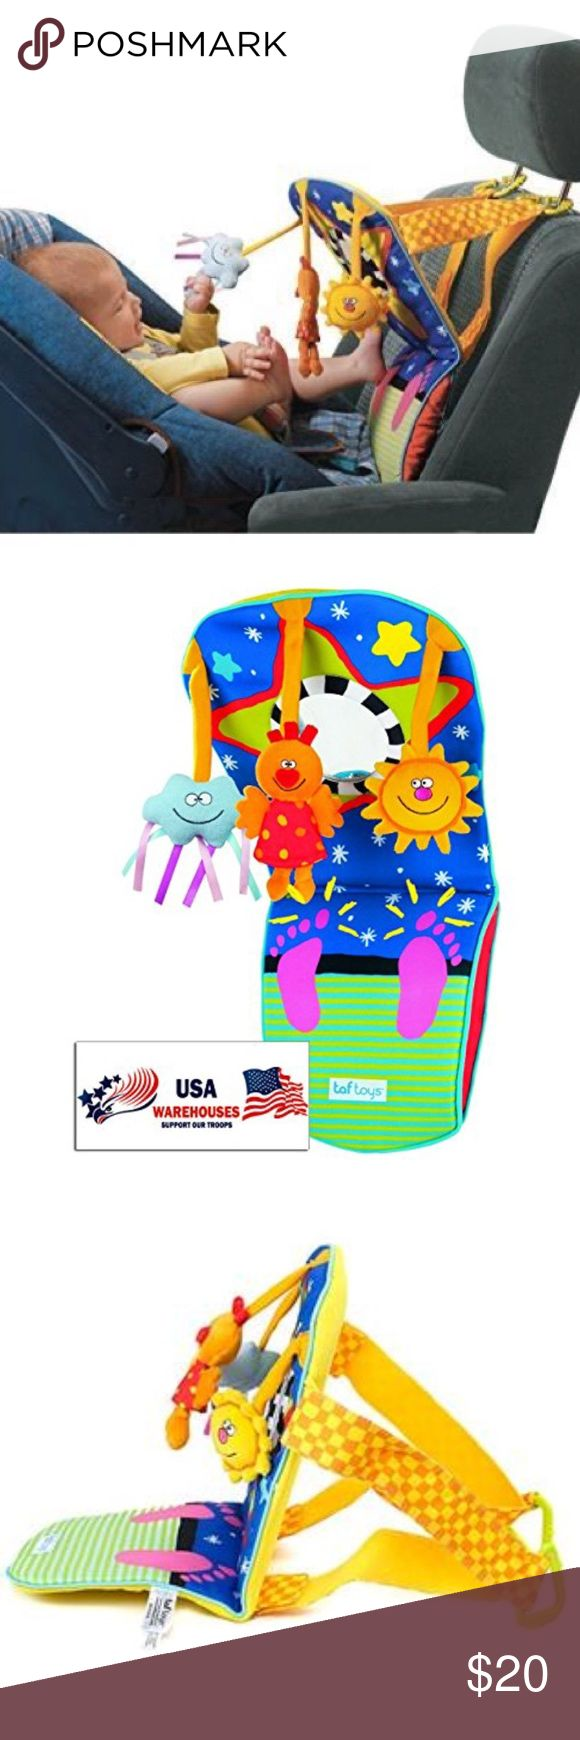 Taf toys car seat toy   best h baby images on Pinterest  Pregnancy Babies rooms and